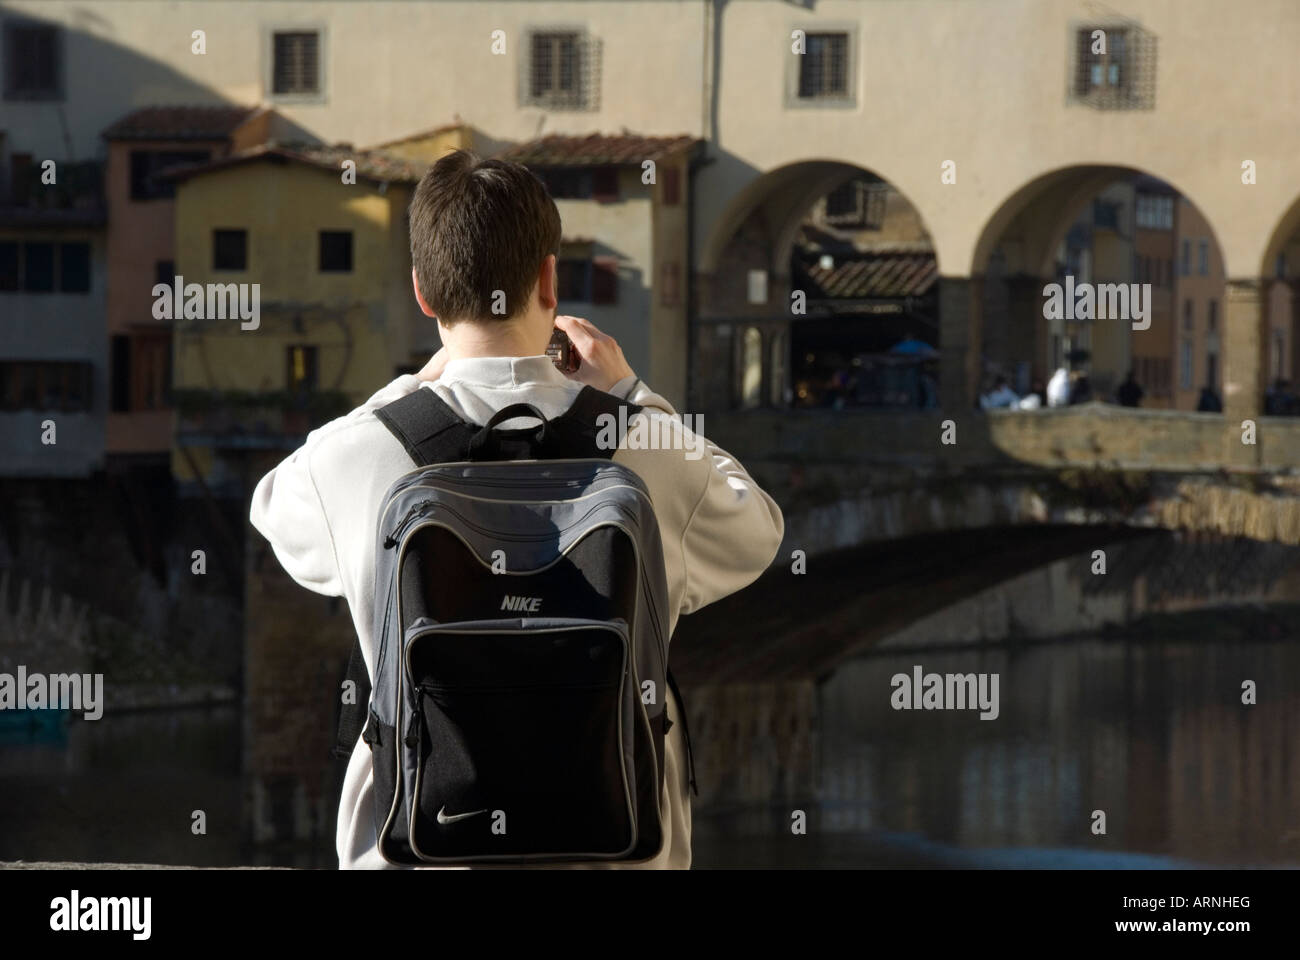 Young backpacker tourist photographing one of the world's most famous sites, the Ponte Vecchio in Florence, - Stock Image